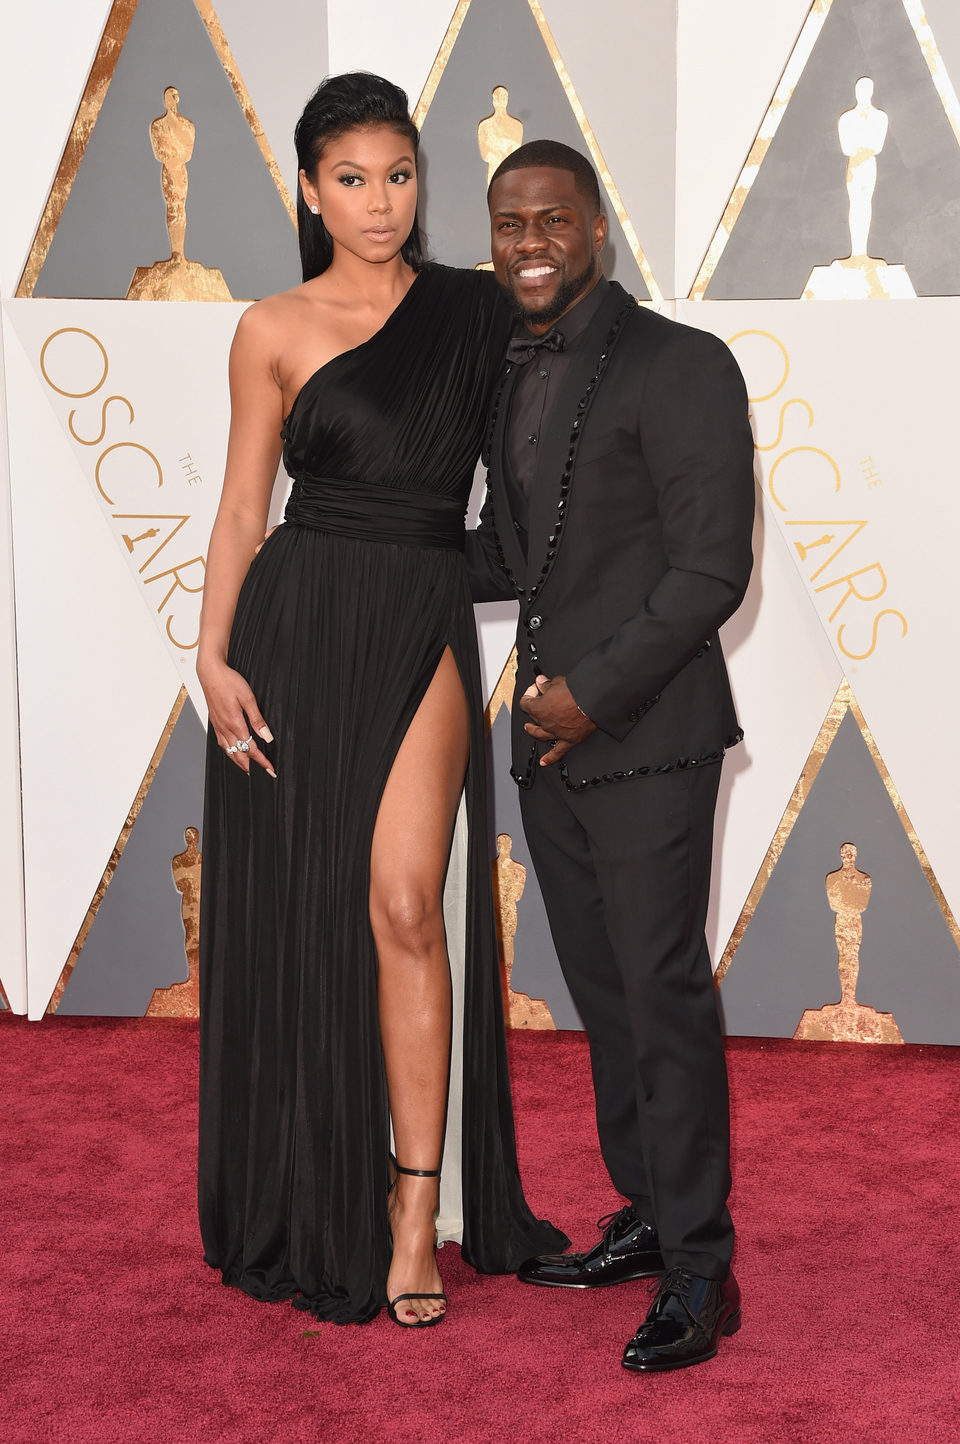 Kevin Hart at the Oscars 2016 red carpet